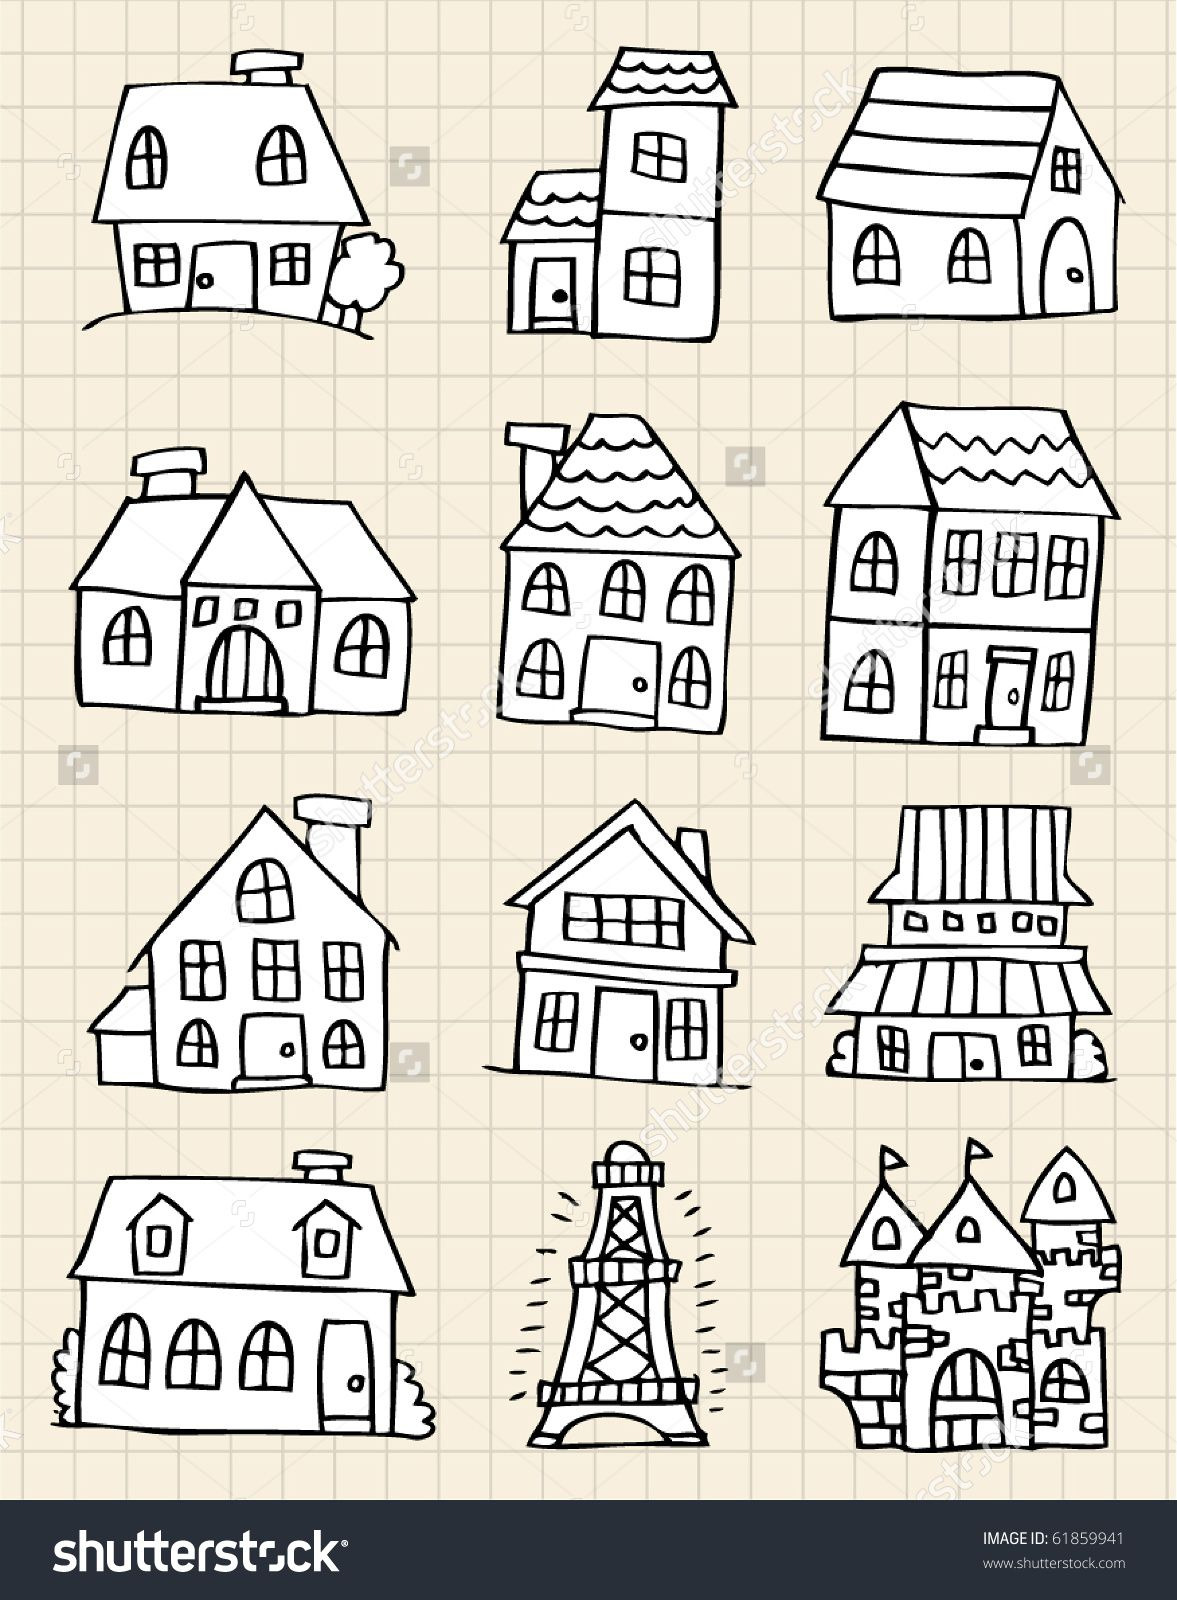 f26a01ccbe5d4f4f3a628c eb16 cute house draw house drawing how to draw hands house doodle 1177 1600